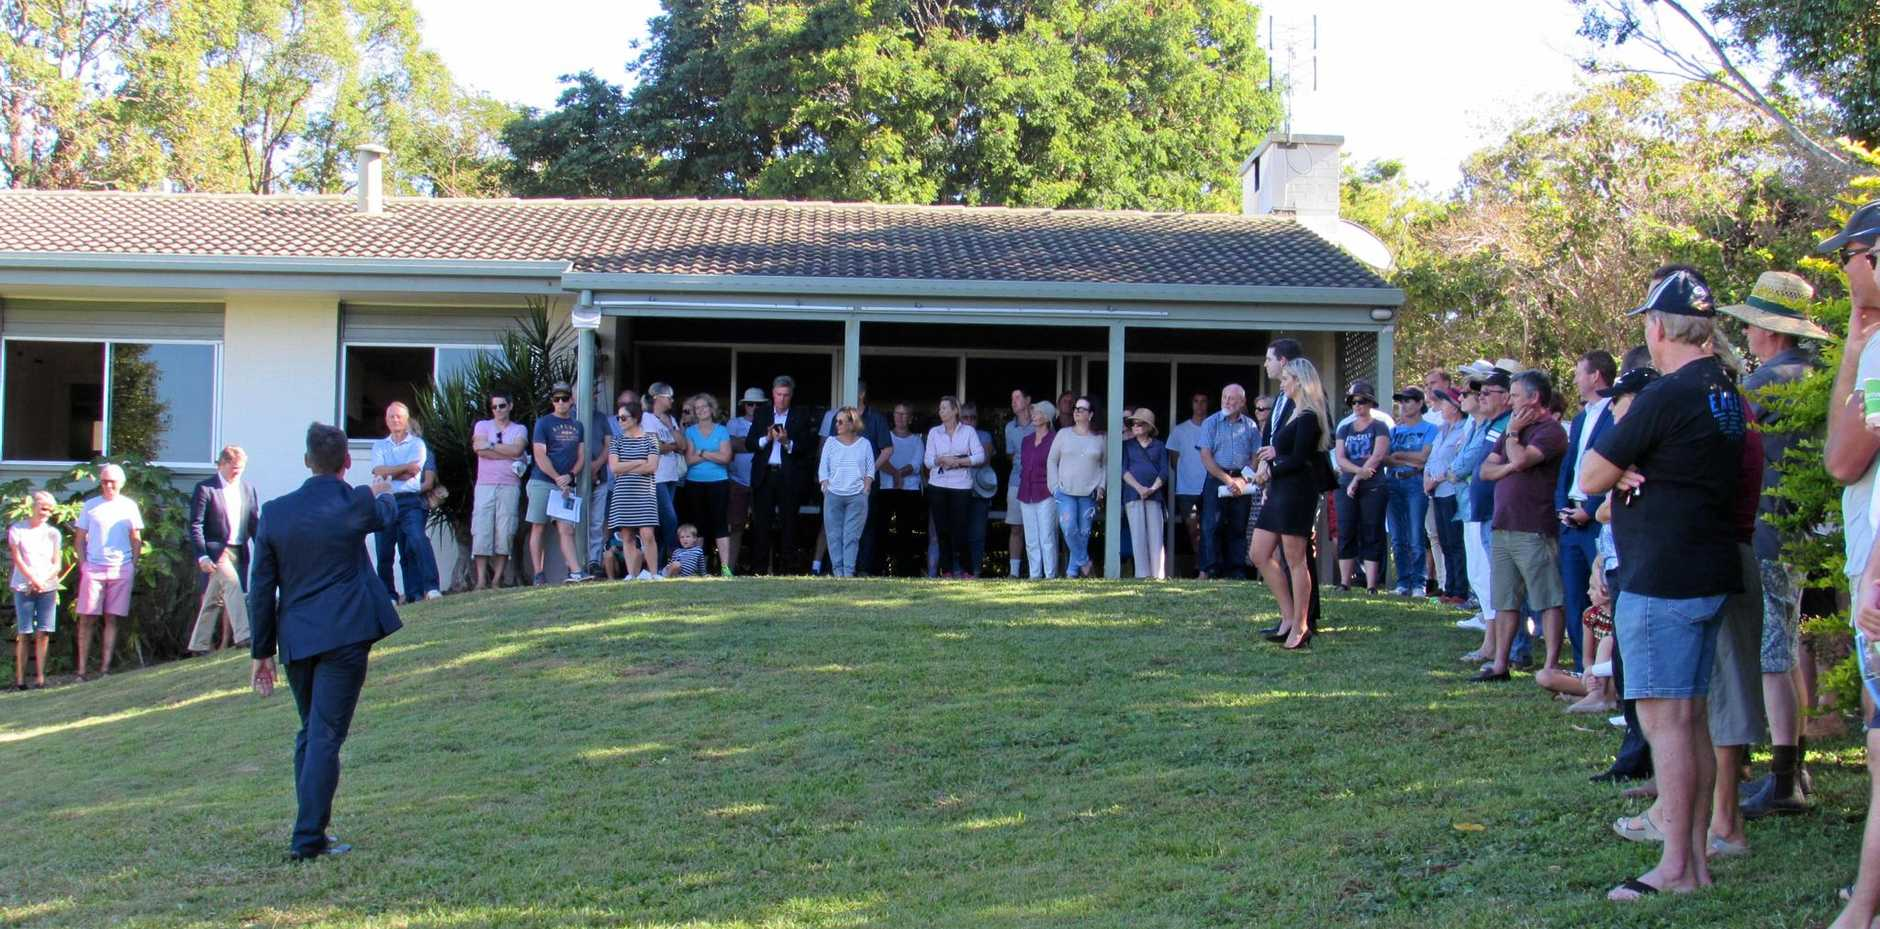 MARKET WATCH: Bidding was strong at the 14 Golf St, Buderim, auction.